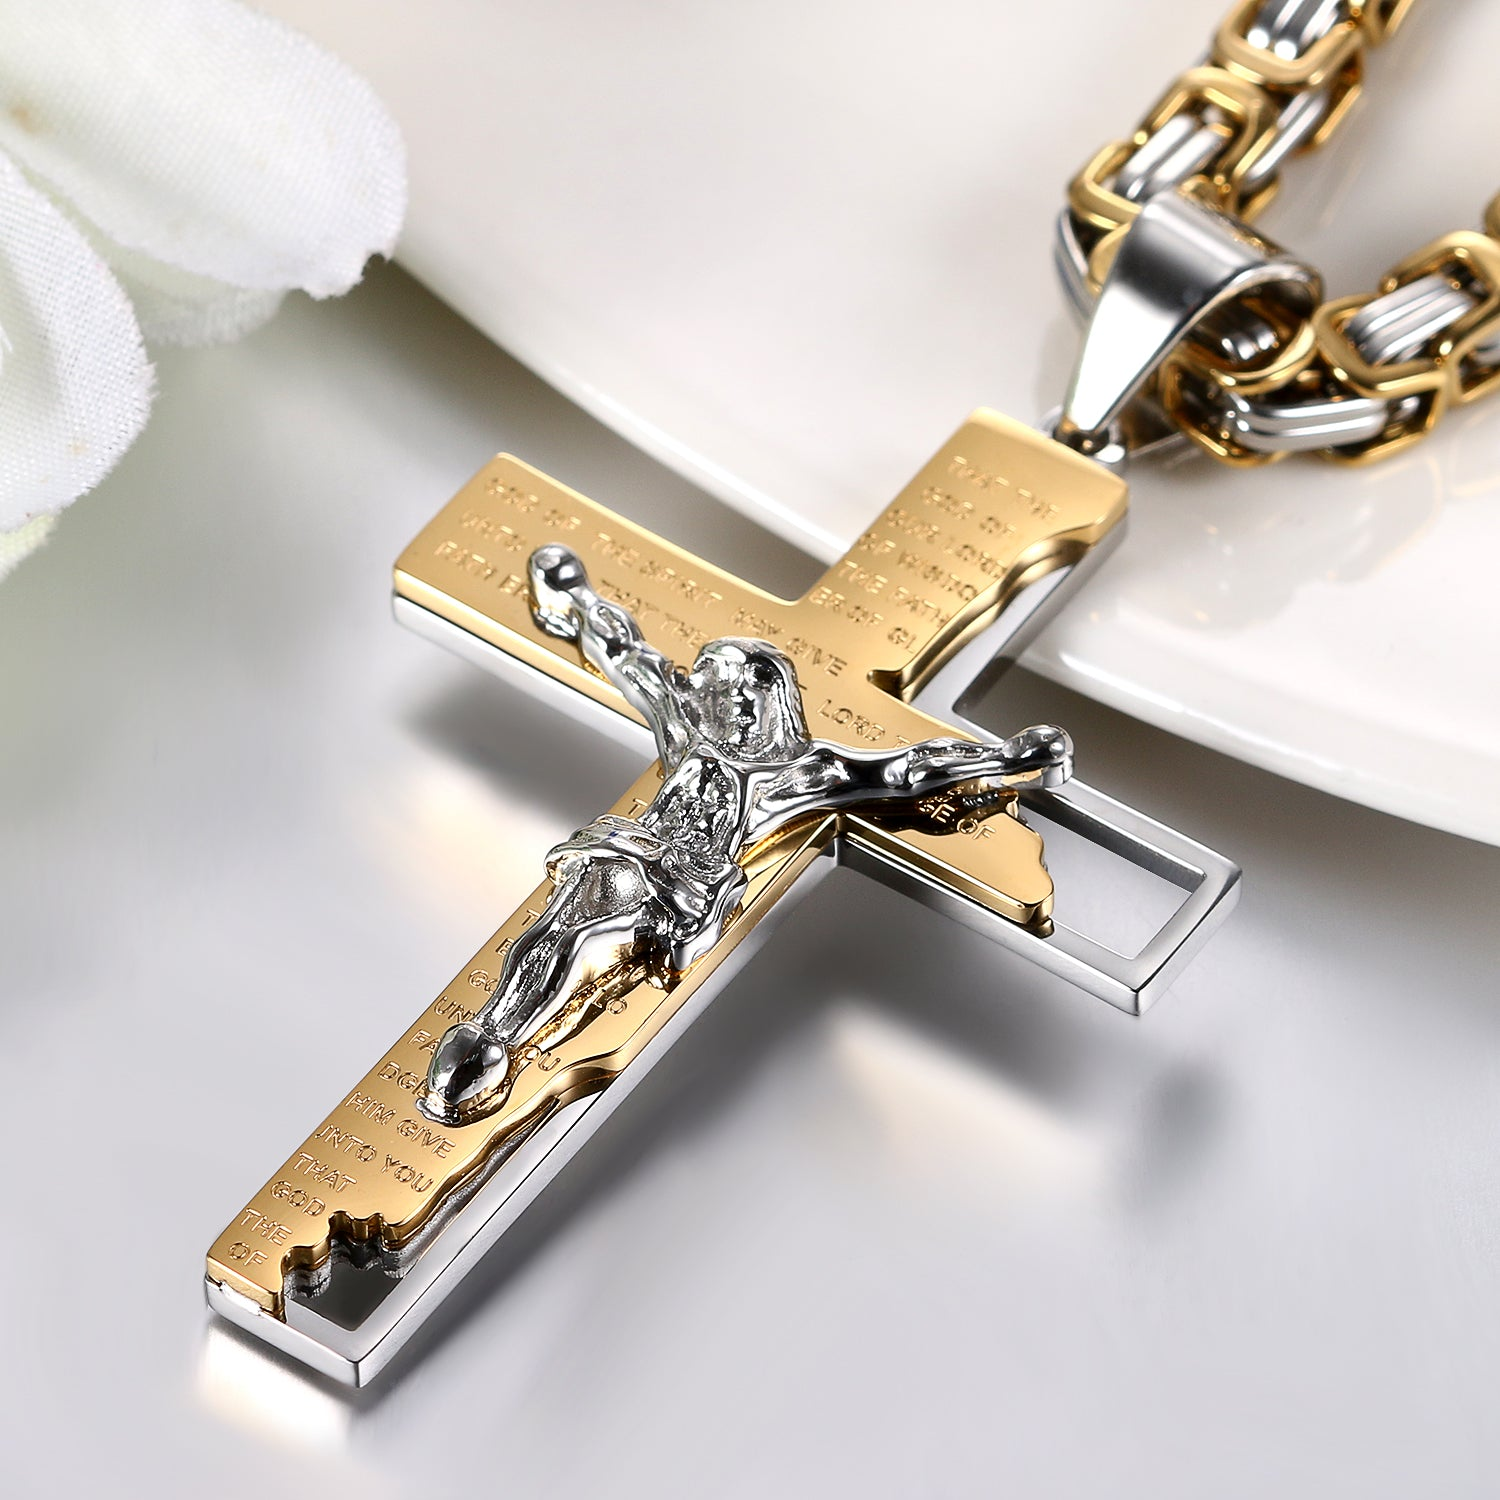 ebay bliss necklace silver on mens chain s men itm crucifix catholic sterling pendant